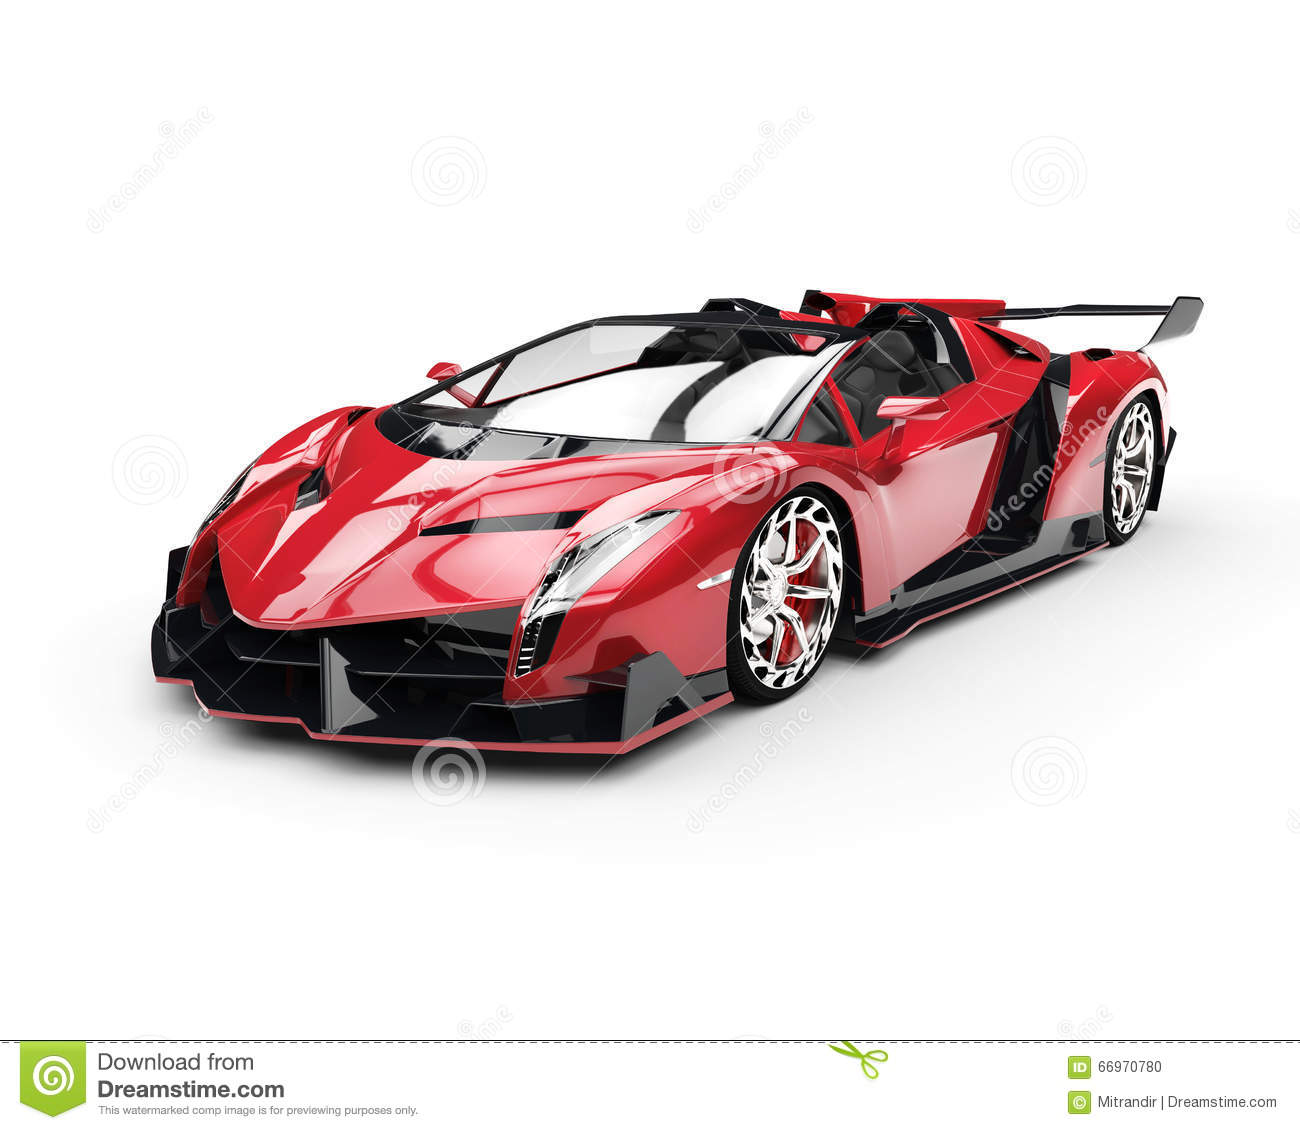 Voiture de course superbe rouge illustration stock illustration du coupe projectile 66970780 - Image voiture de course ...